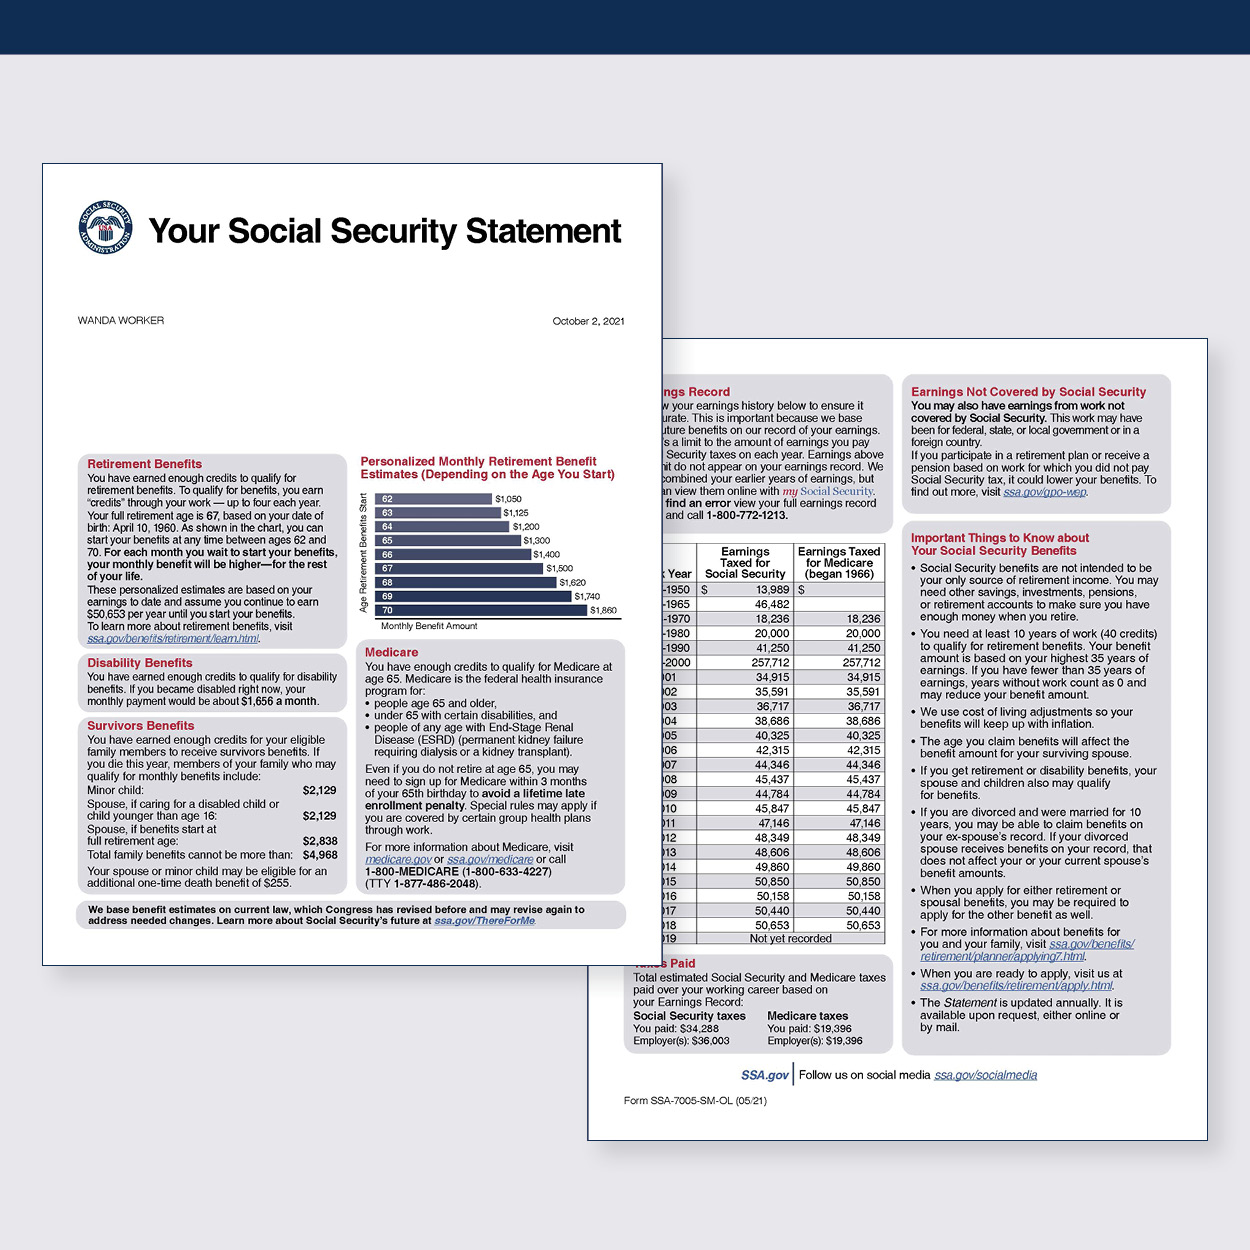 Your Social Security Statement